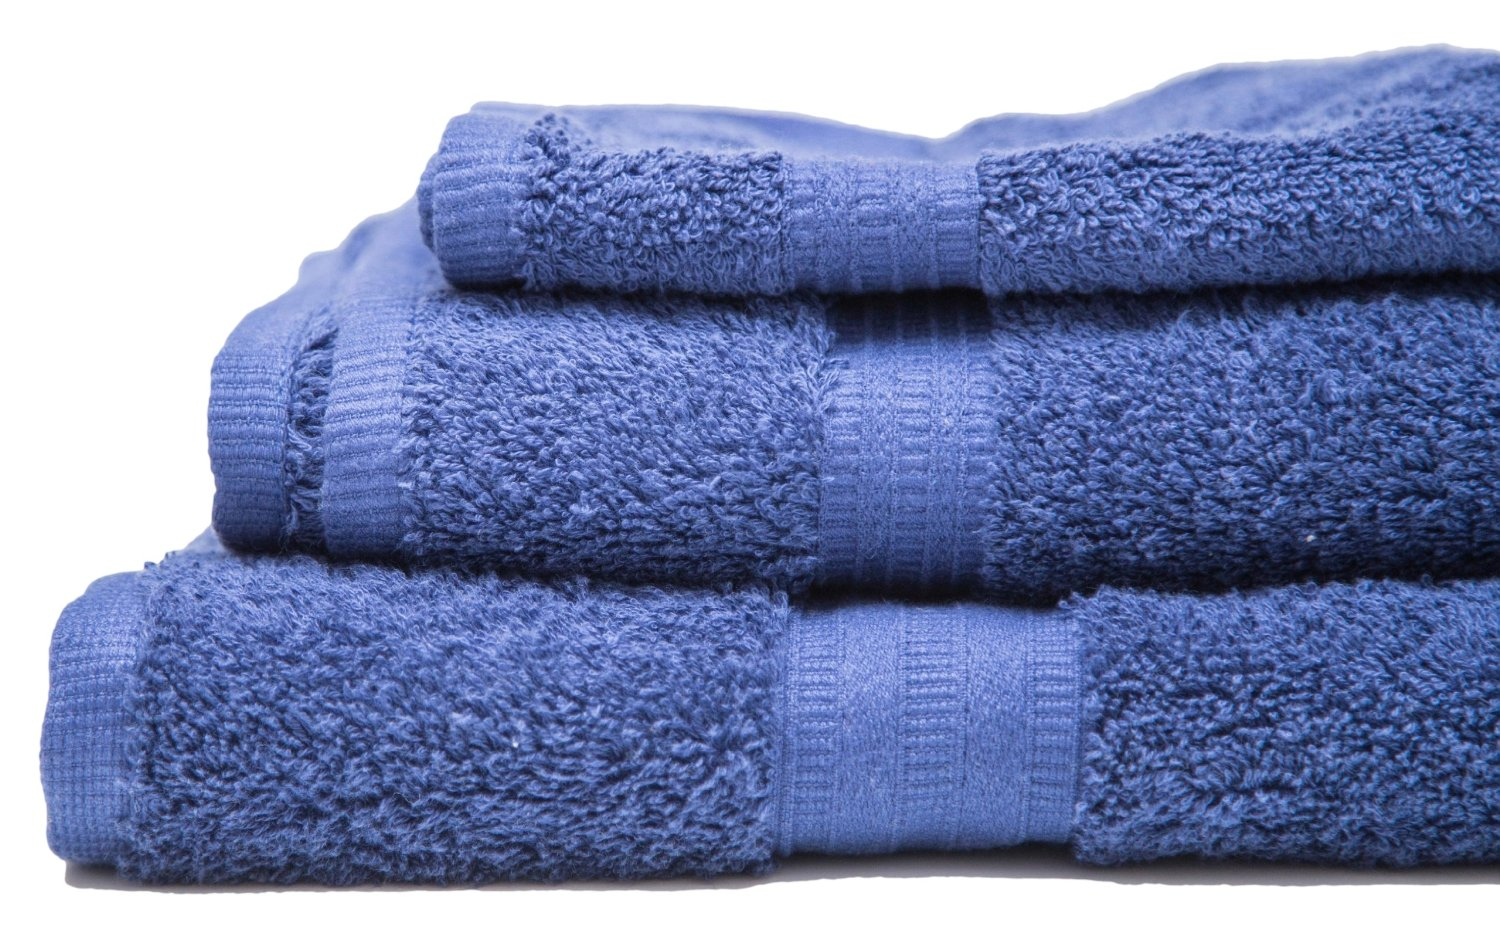 Flato 4 Piece 100% Cotton Bath Towel Set, 700 GSM (Navy)